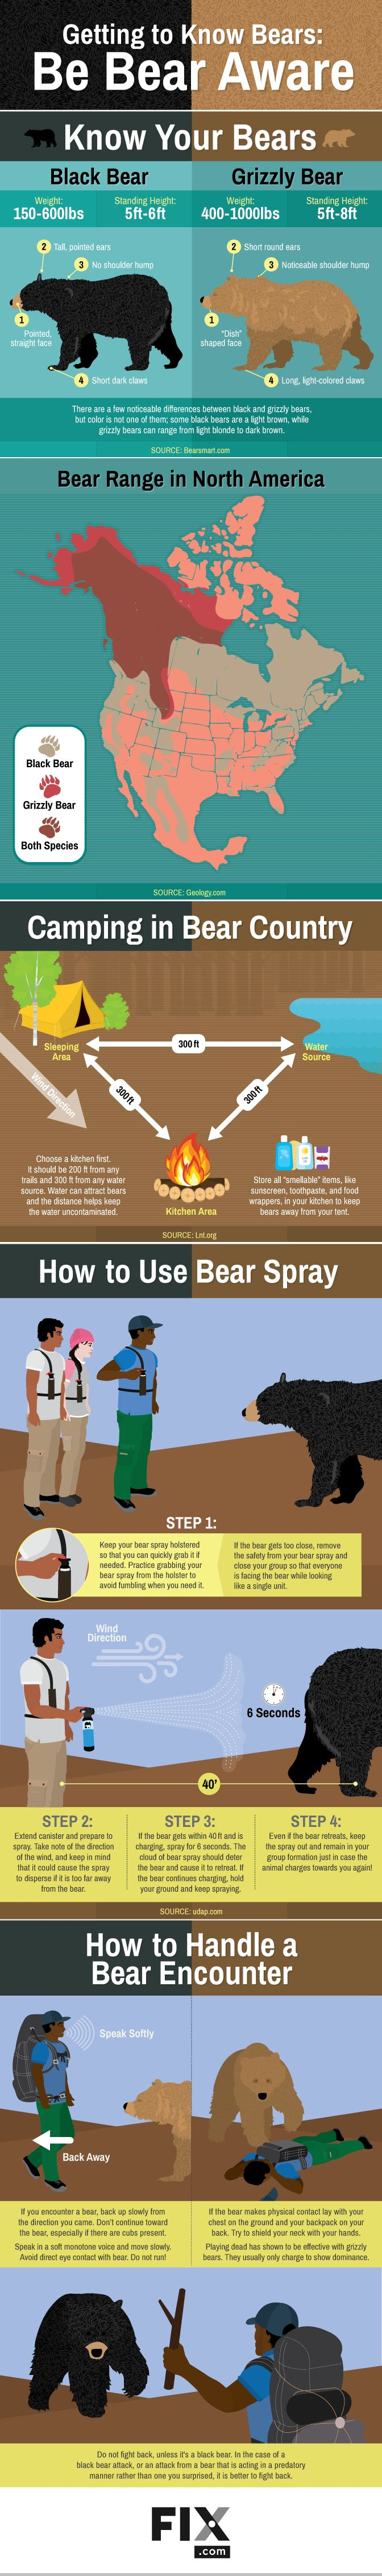 Getting to Know Bears: Be Bear Aware (Bear Safety)  https://www.fix.com/blog/be-aware-of-bears/